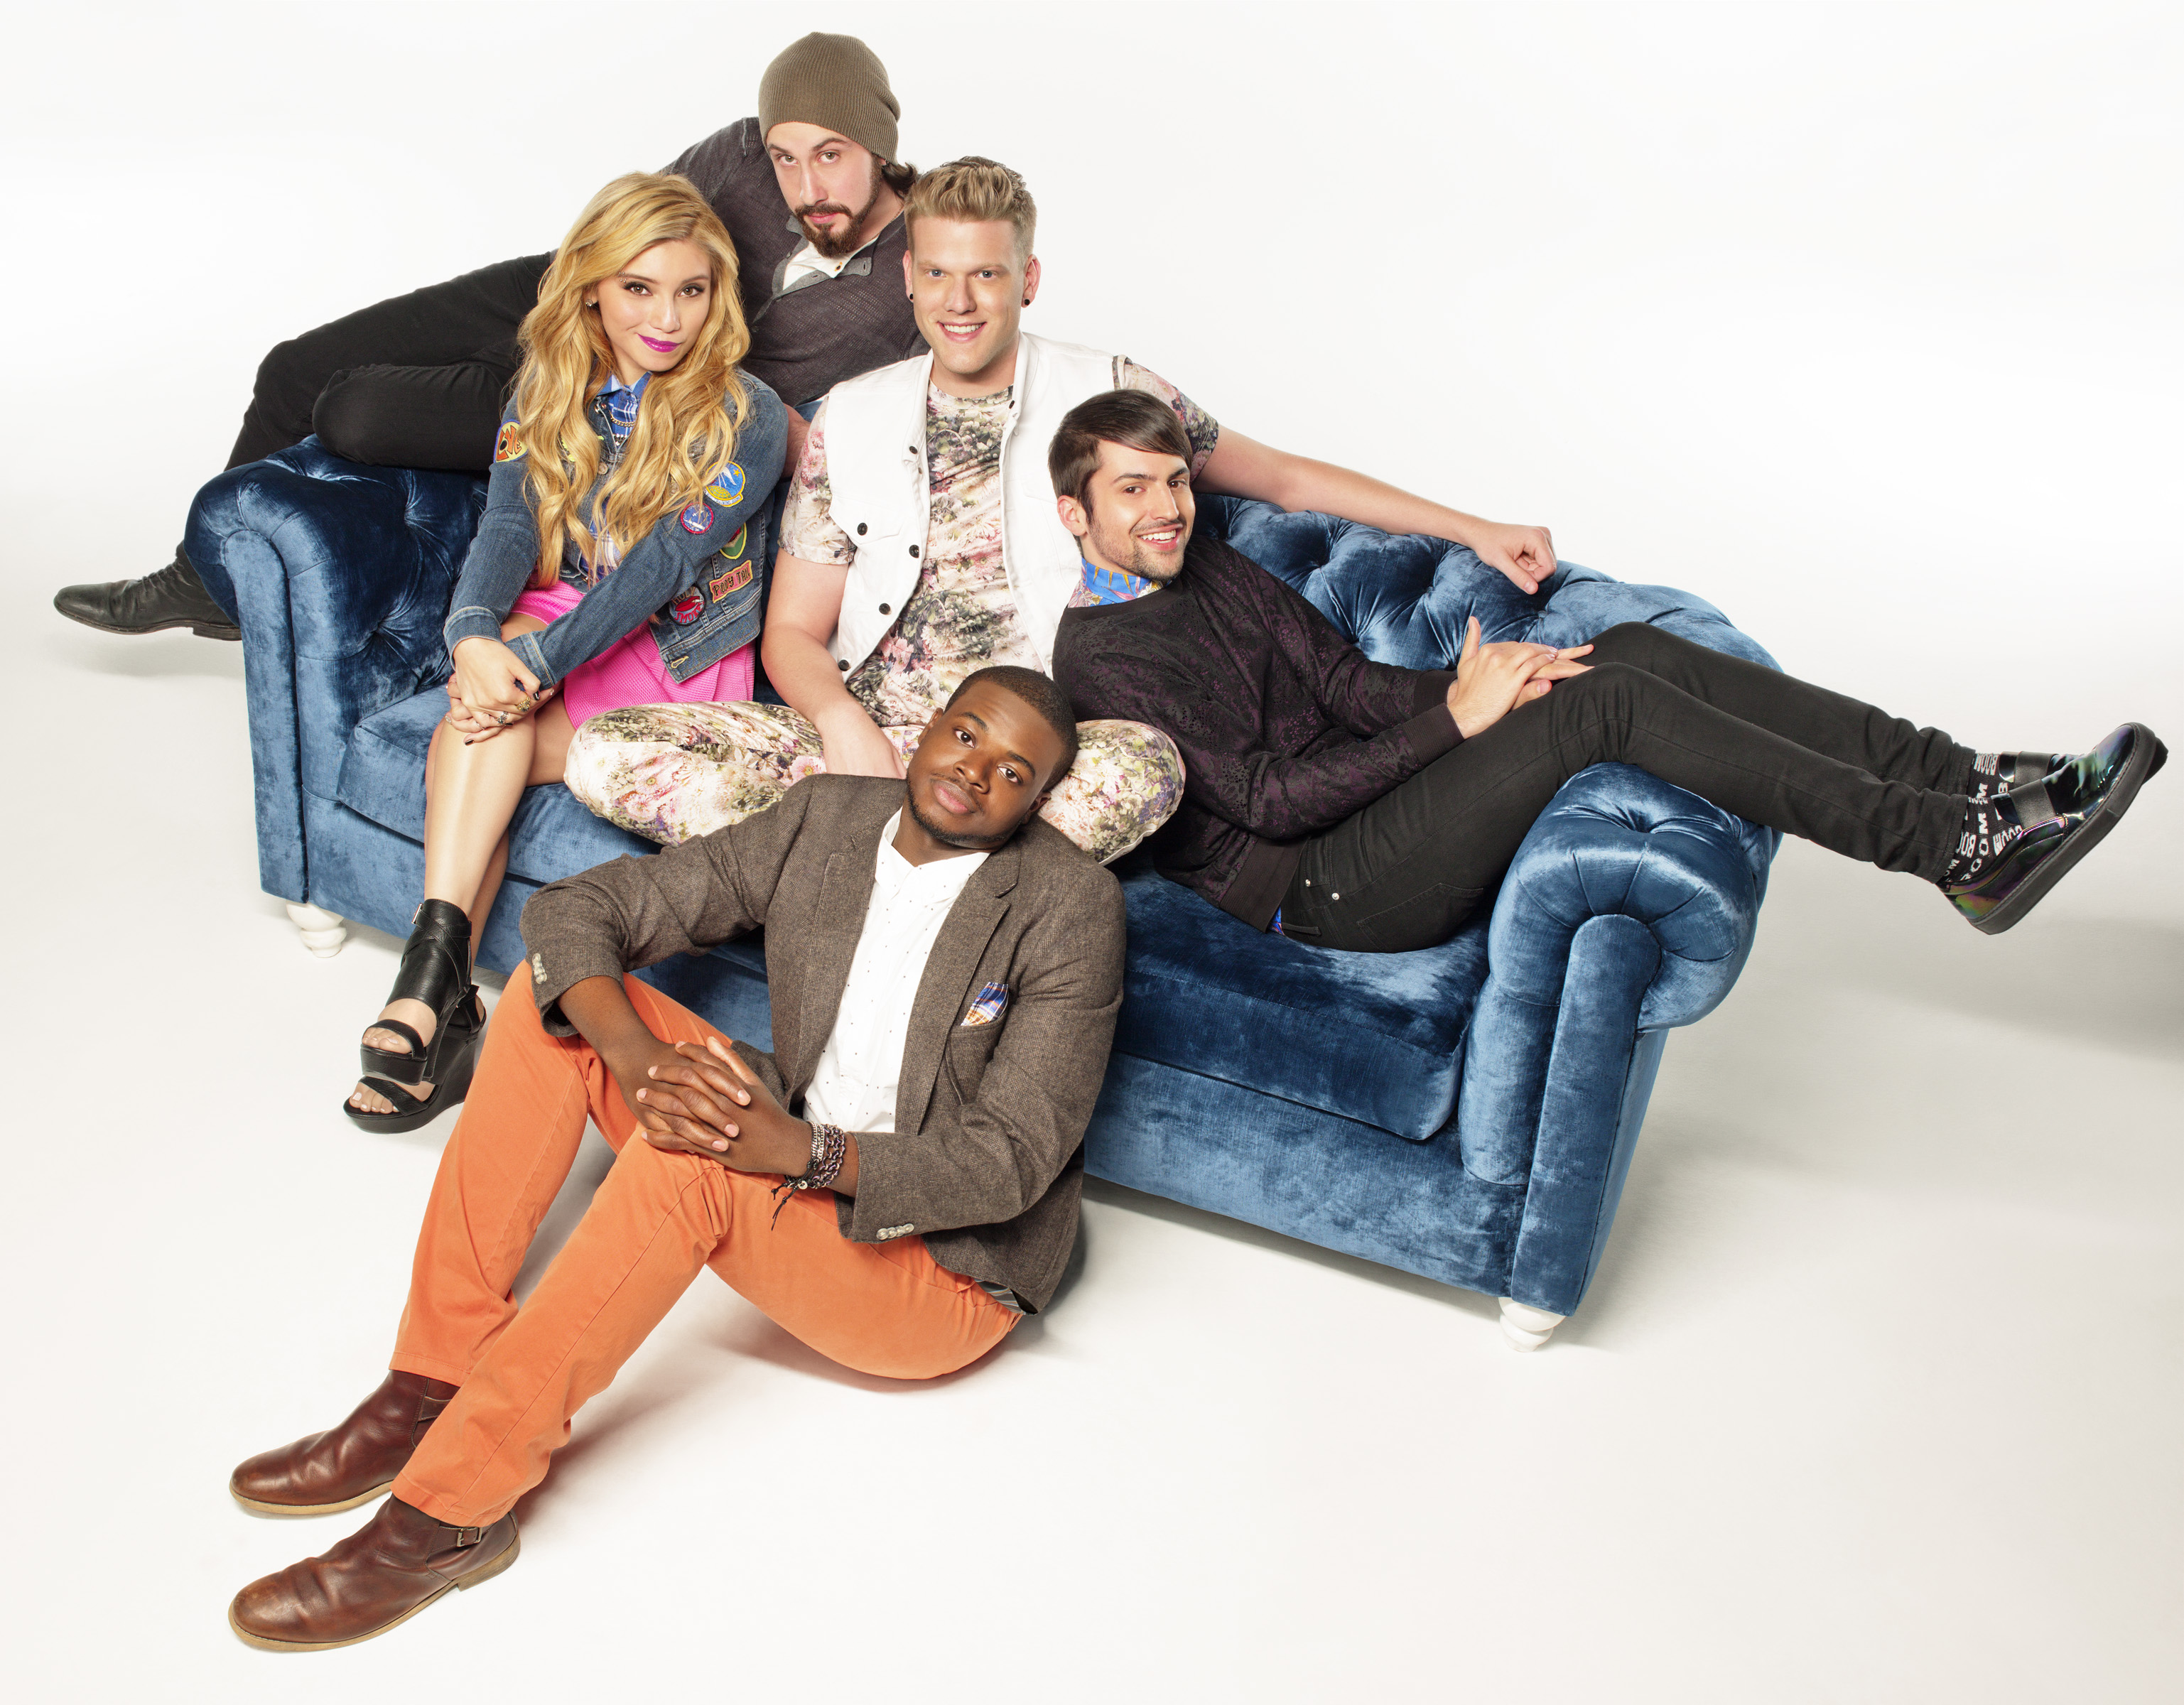 Pentatonix interview by Pamela Price - LATF